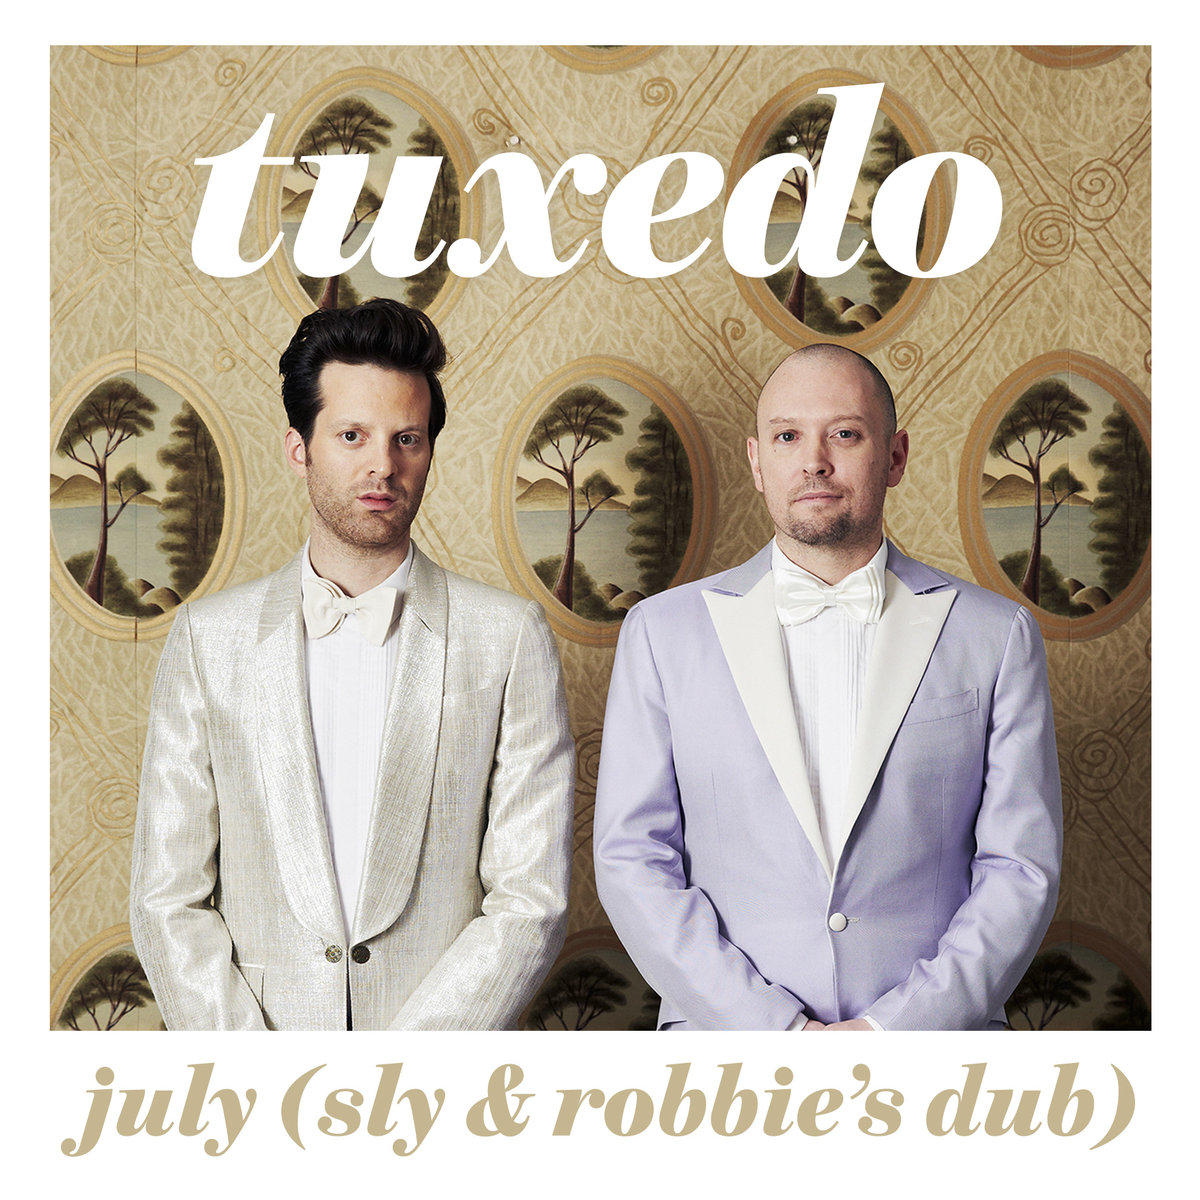 Tuxedo at NPR | Tiny Desk Concert x July - Sly and Robbie Dub Remix | Musikvideo x SOTD